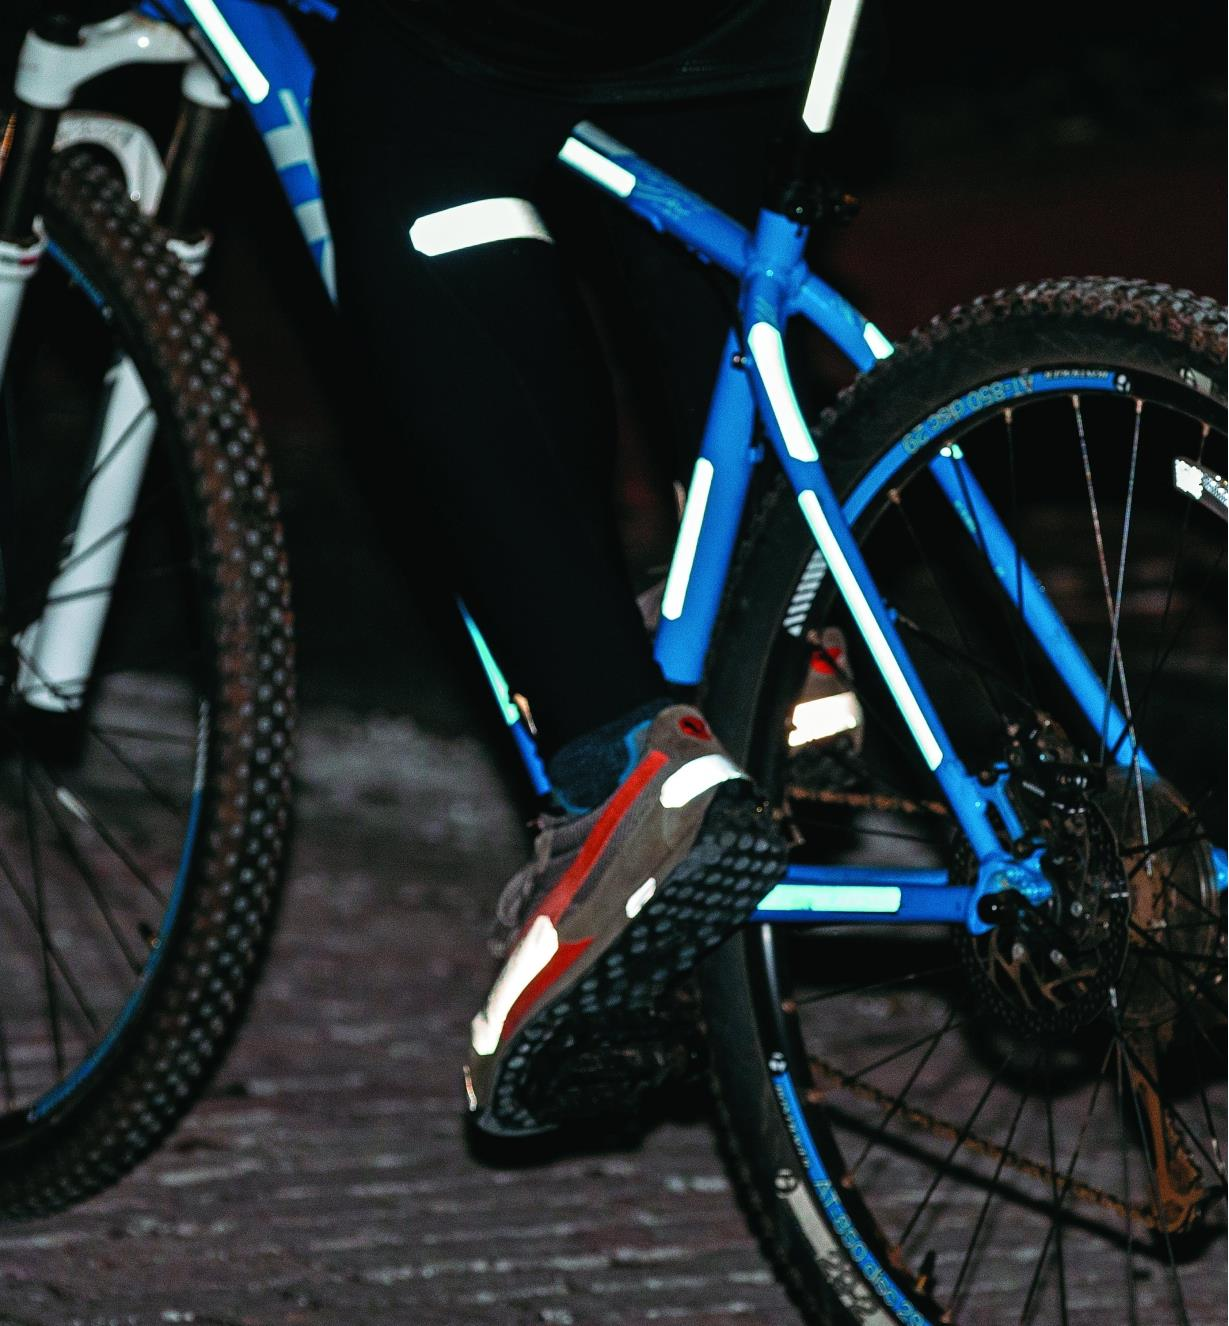 Iron-On & Peel-and-Stick Reflective Strips